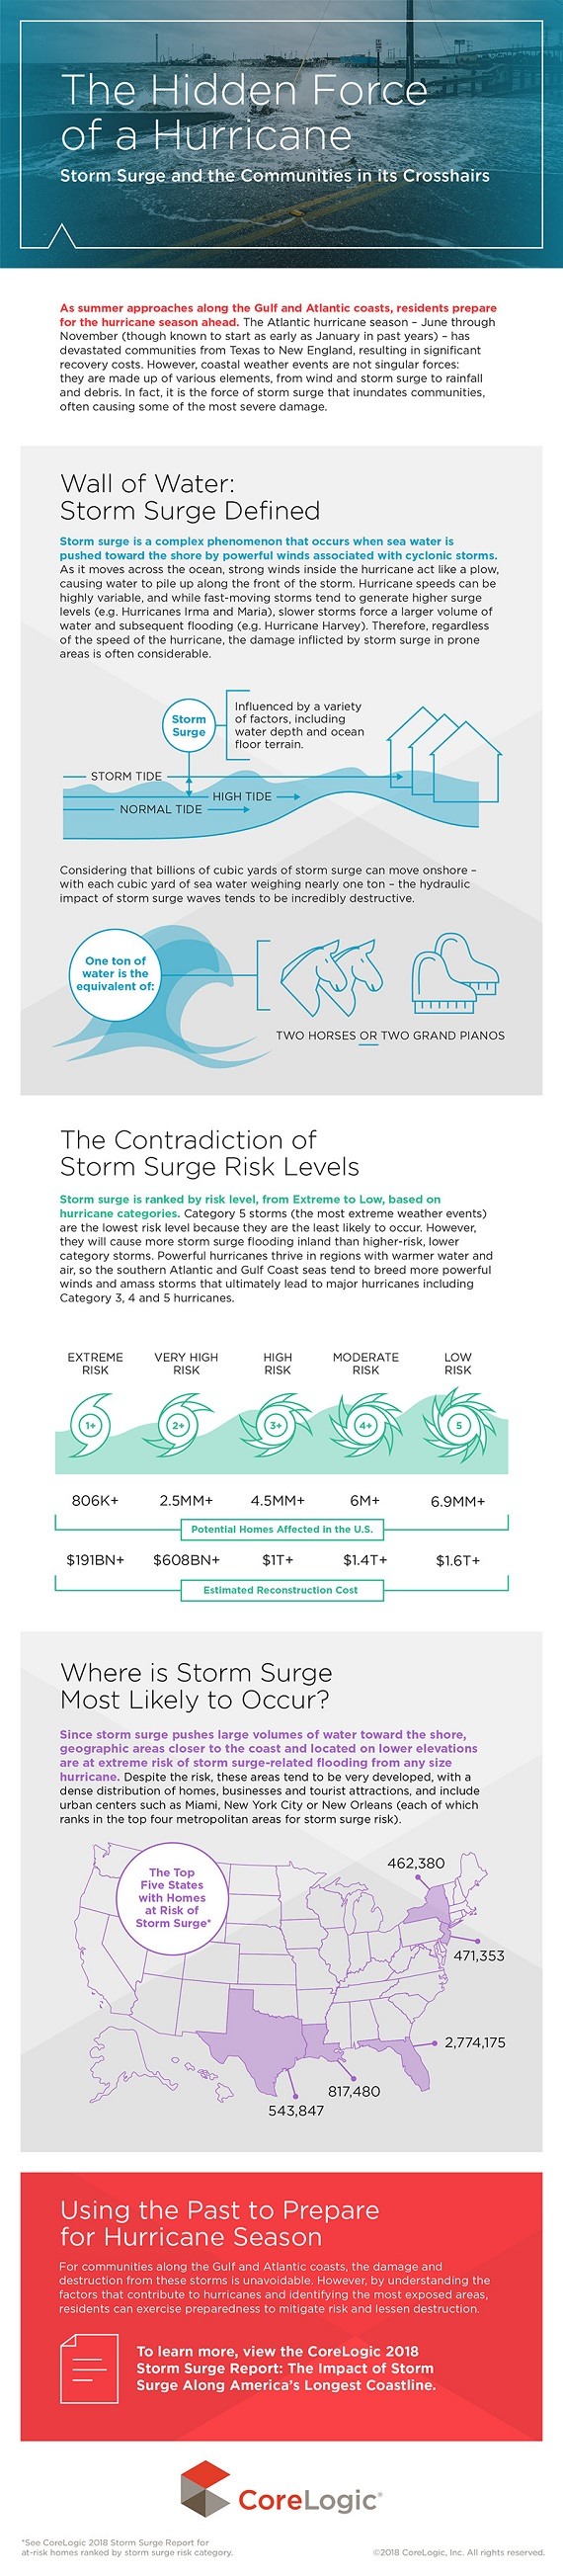 infographic on hurricane strom surge